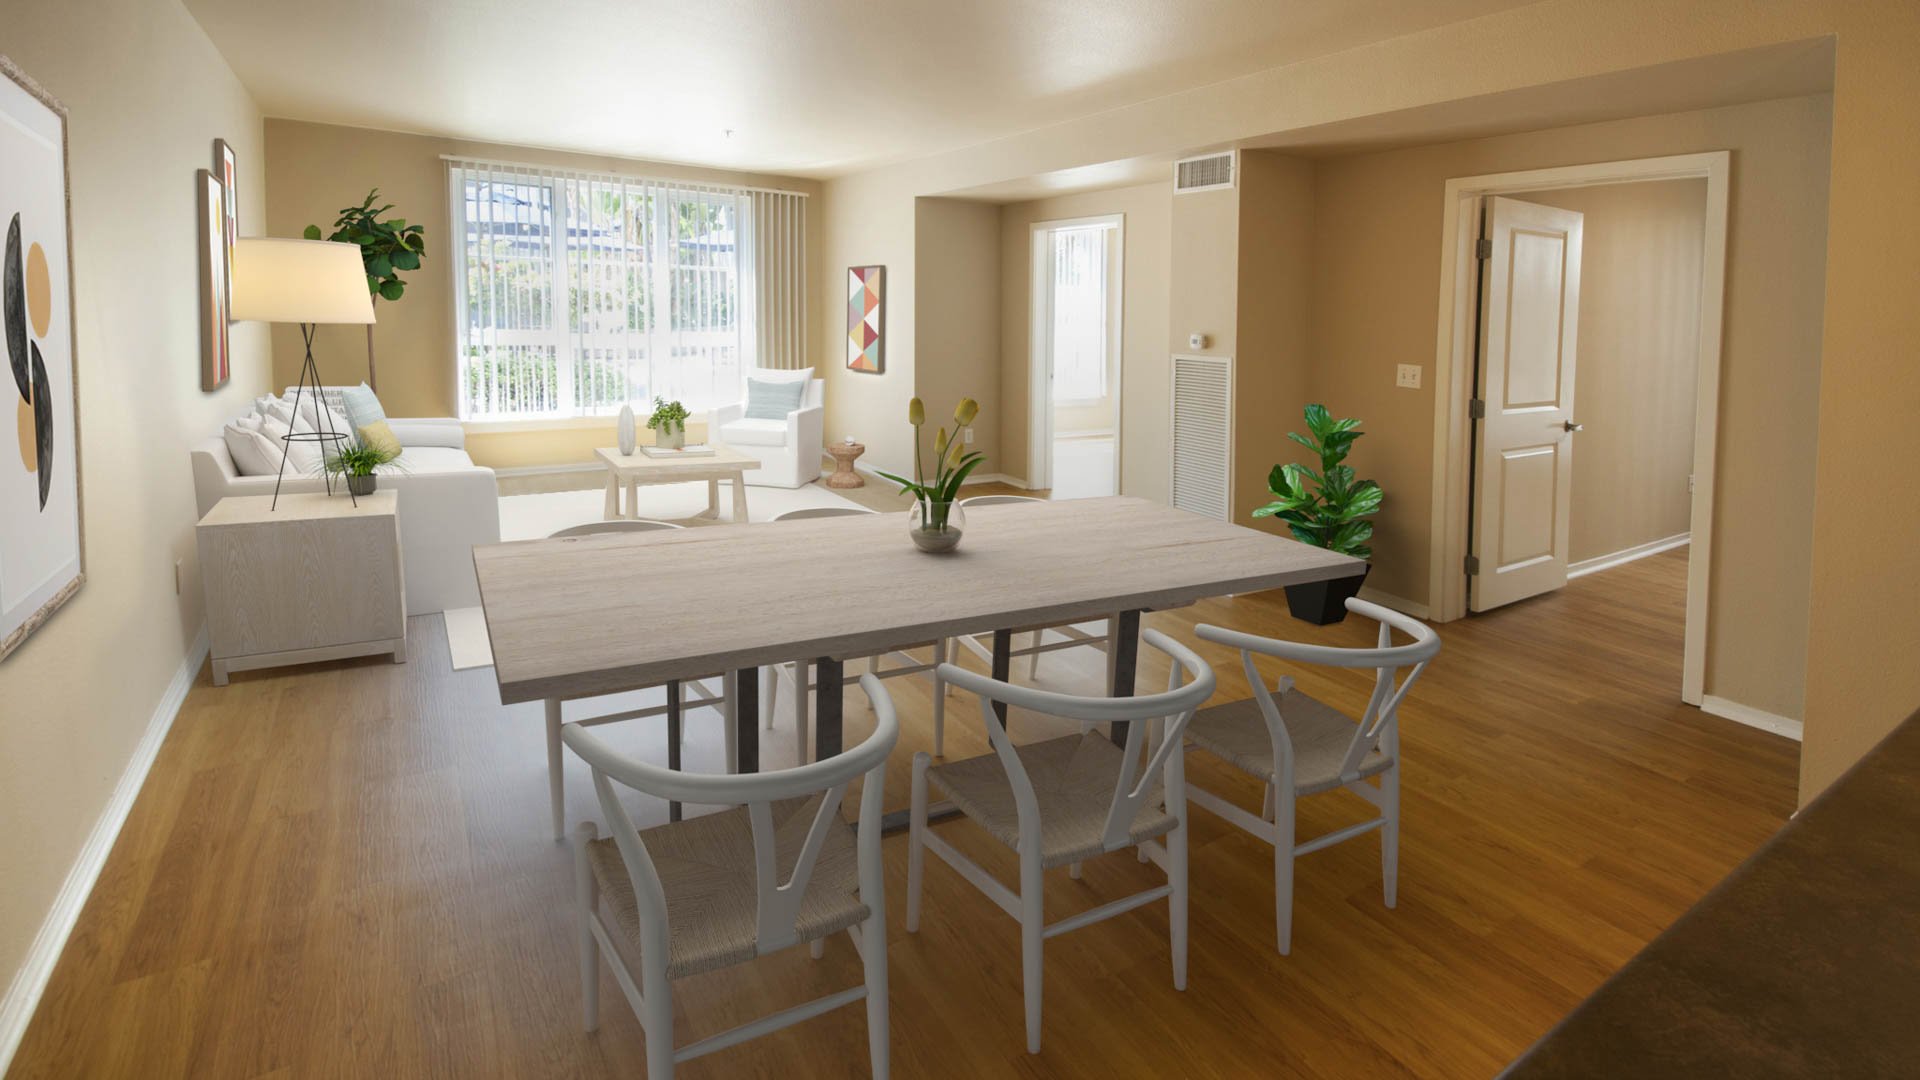 Market Street Village Apartments - Living and Dining Area